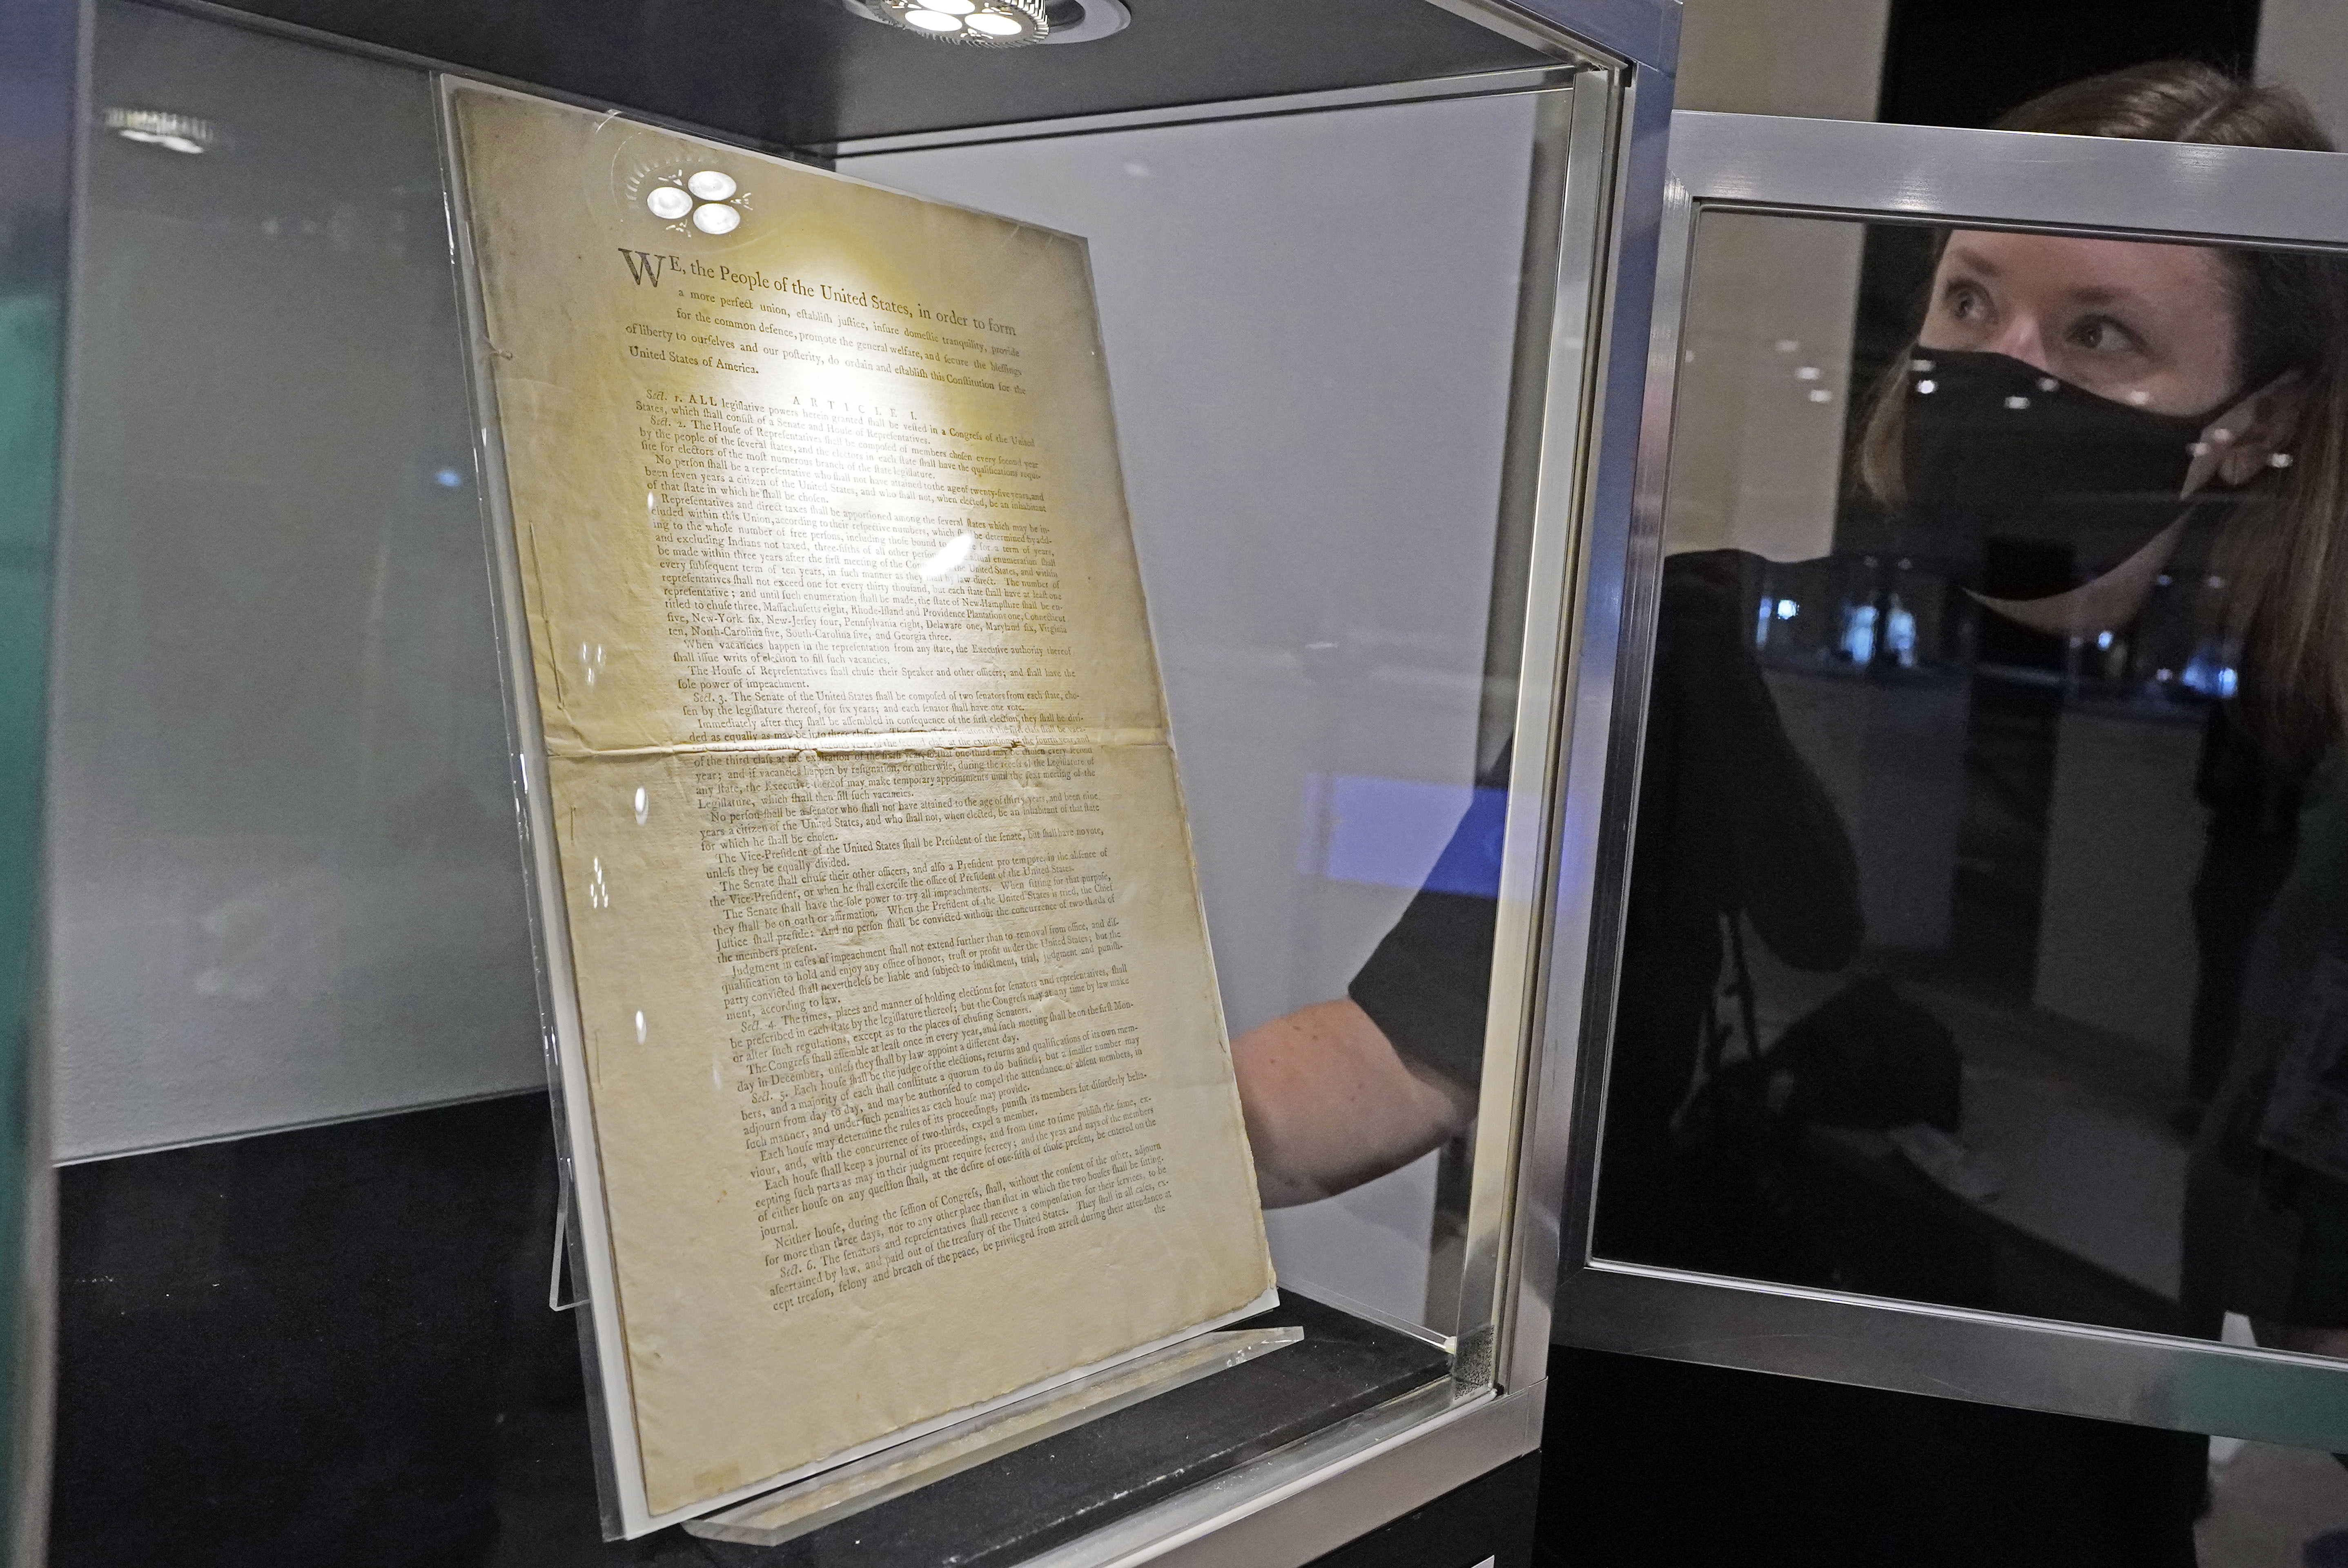 Ella Hall, a specialist in Books and Manuscripts at Sotheby's in New York, places a 1787 printed copy of the U.S. Constitution in its display case on Friday, Sept. 17, 2021.